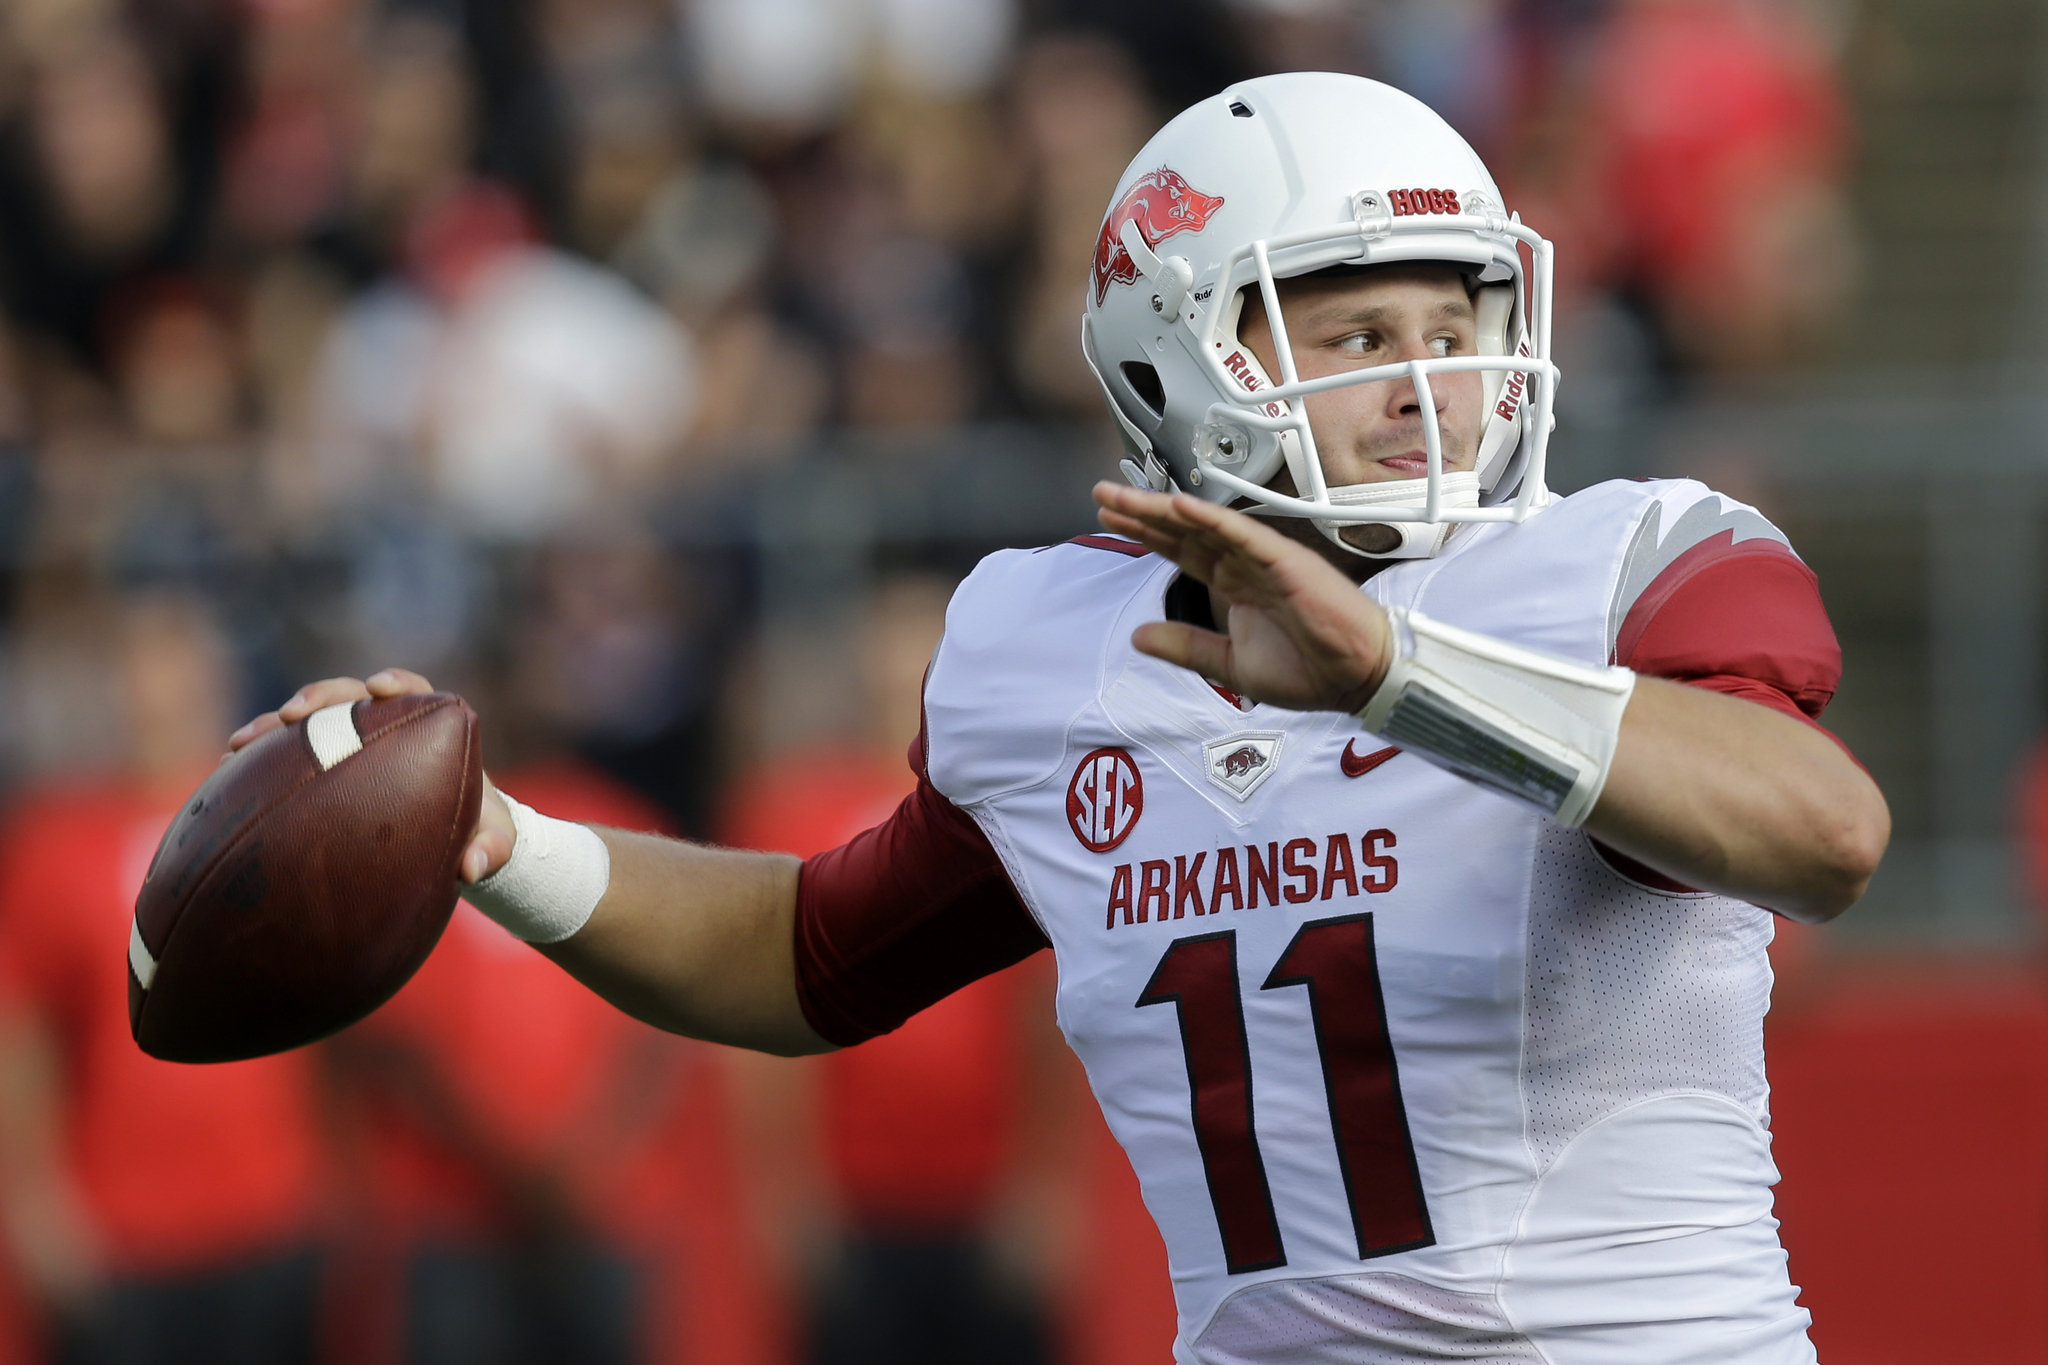 SEC Outlook: Arkansas finds a TE under center, injuries slow Kentucky and 11 invited to draft